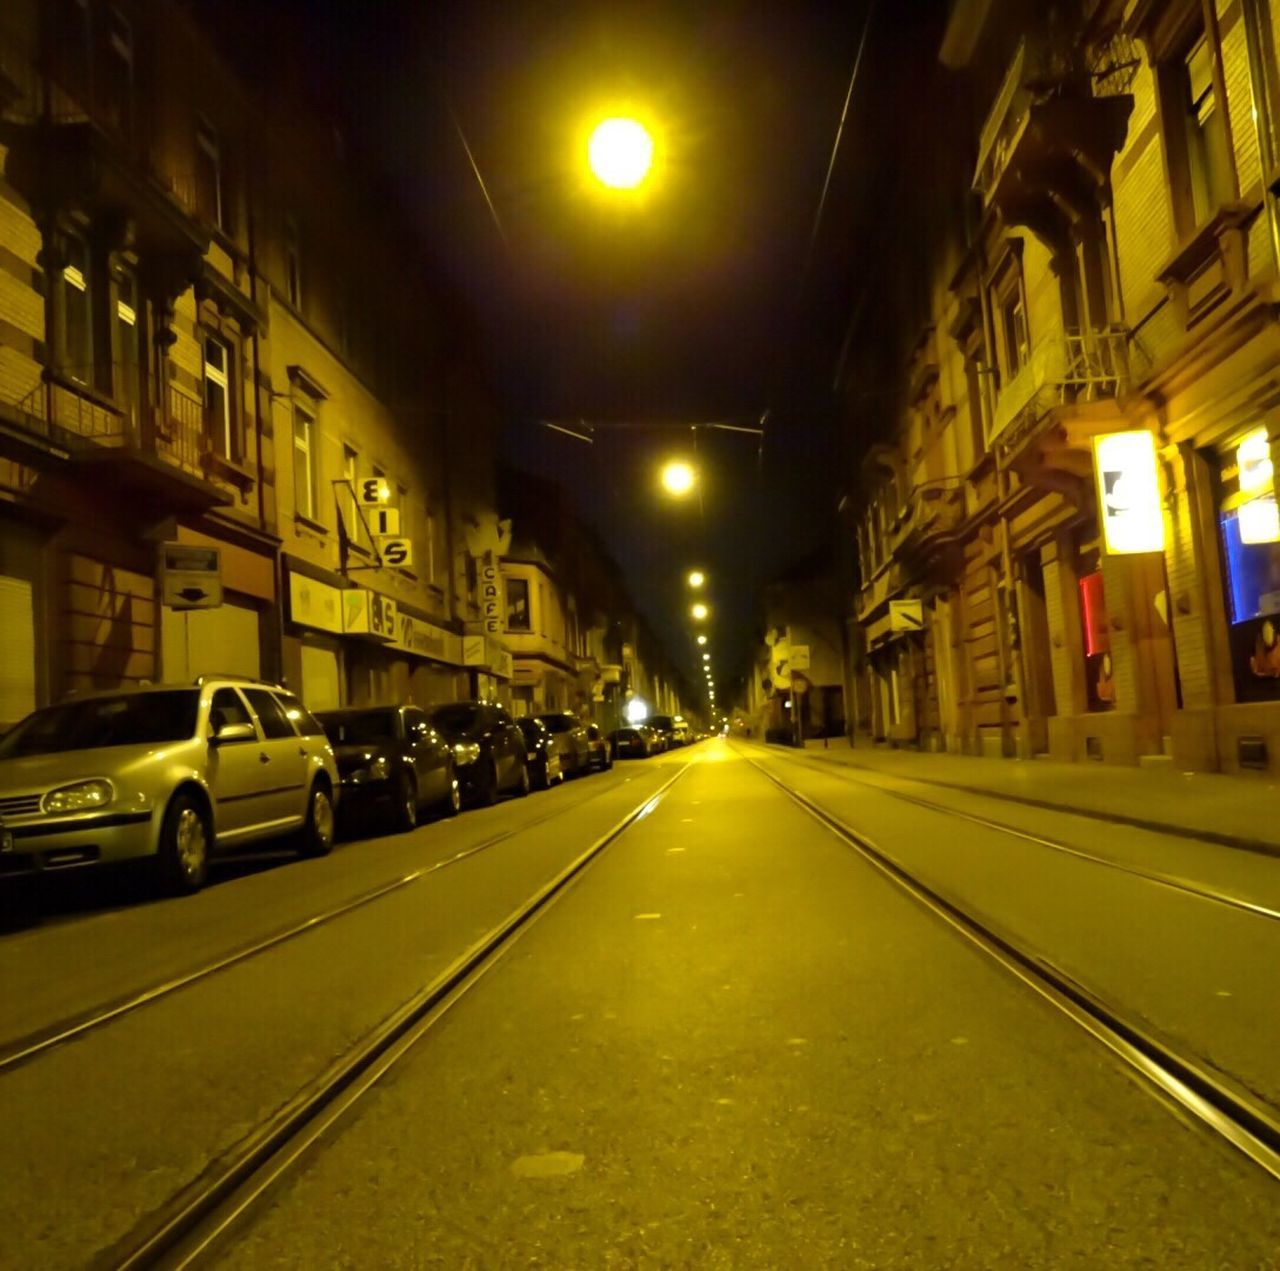 Sleeplessnights  Illuminated Transportation Night Architecture Built Structure Car No People Land Vehicle Building Exterior Mannheim Activity Germany Mannheim The Way Forward Road Outdoors Street Empty